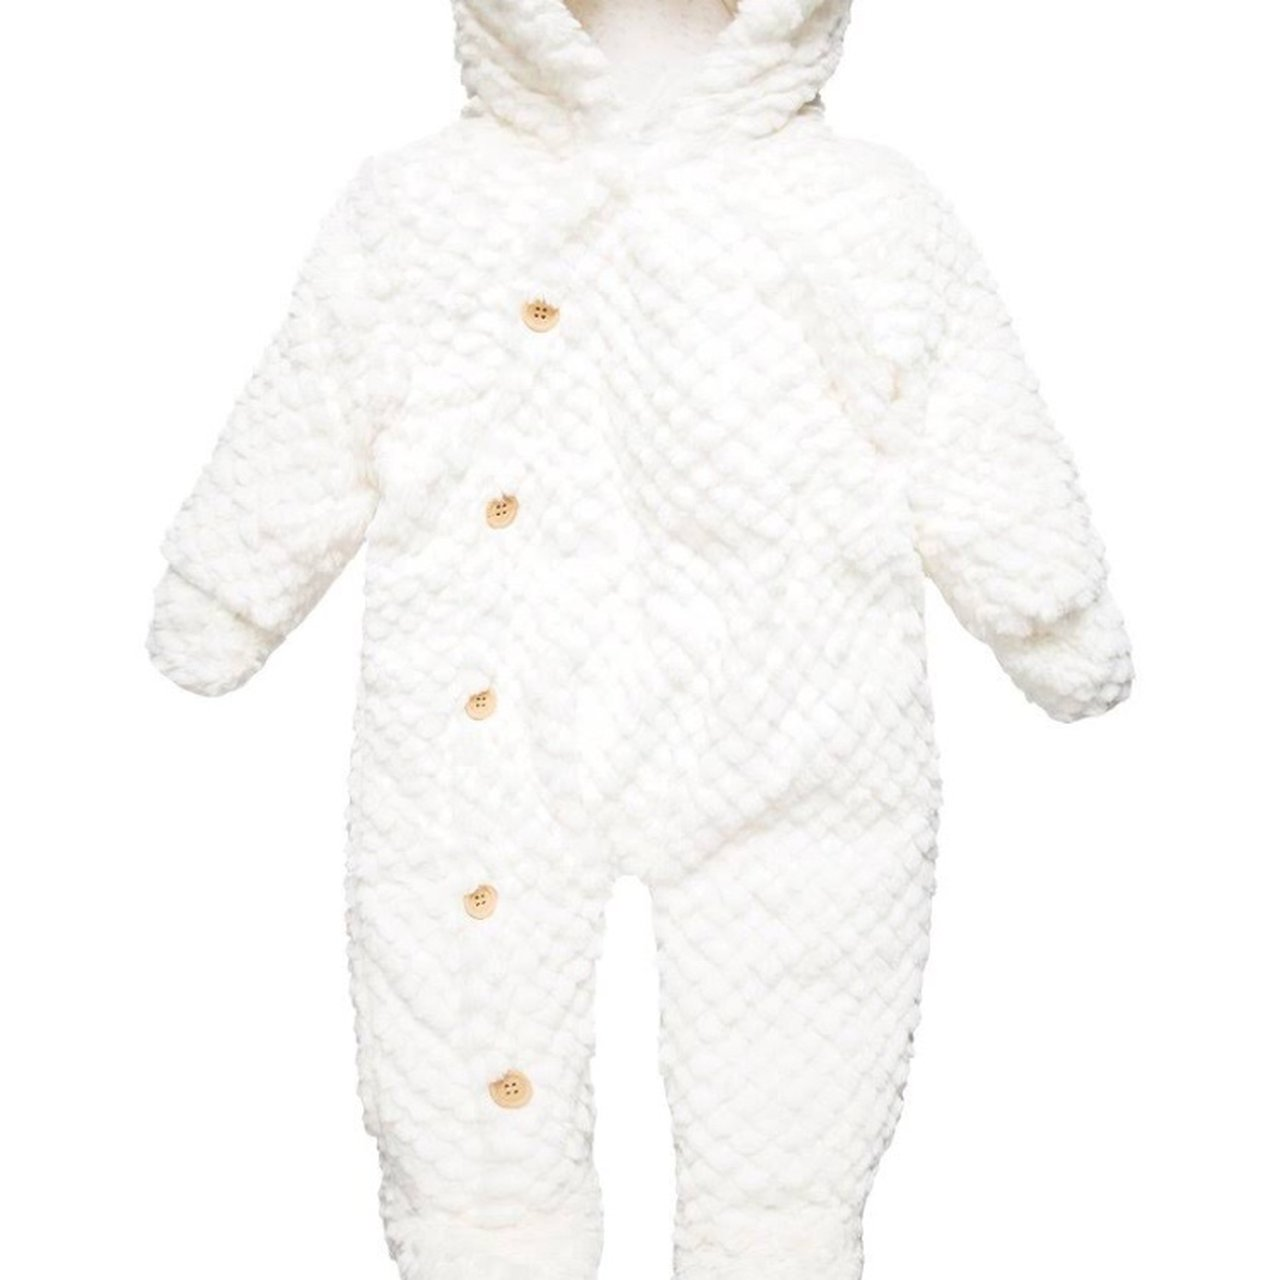 fbd1ddf87316 Mothercare 3-6 months brand new baby snowsuit with tags - Depop